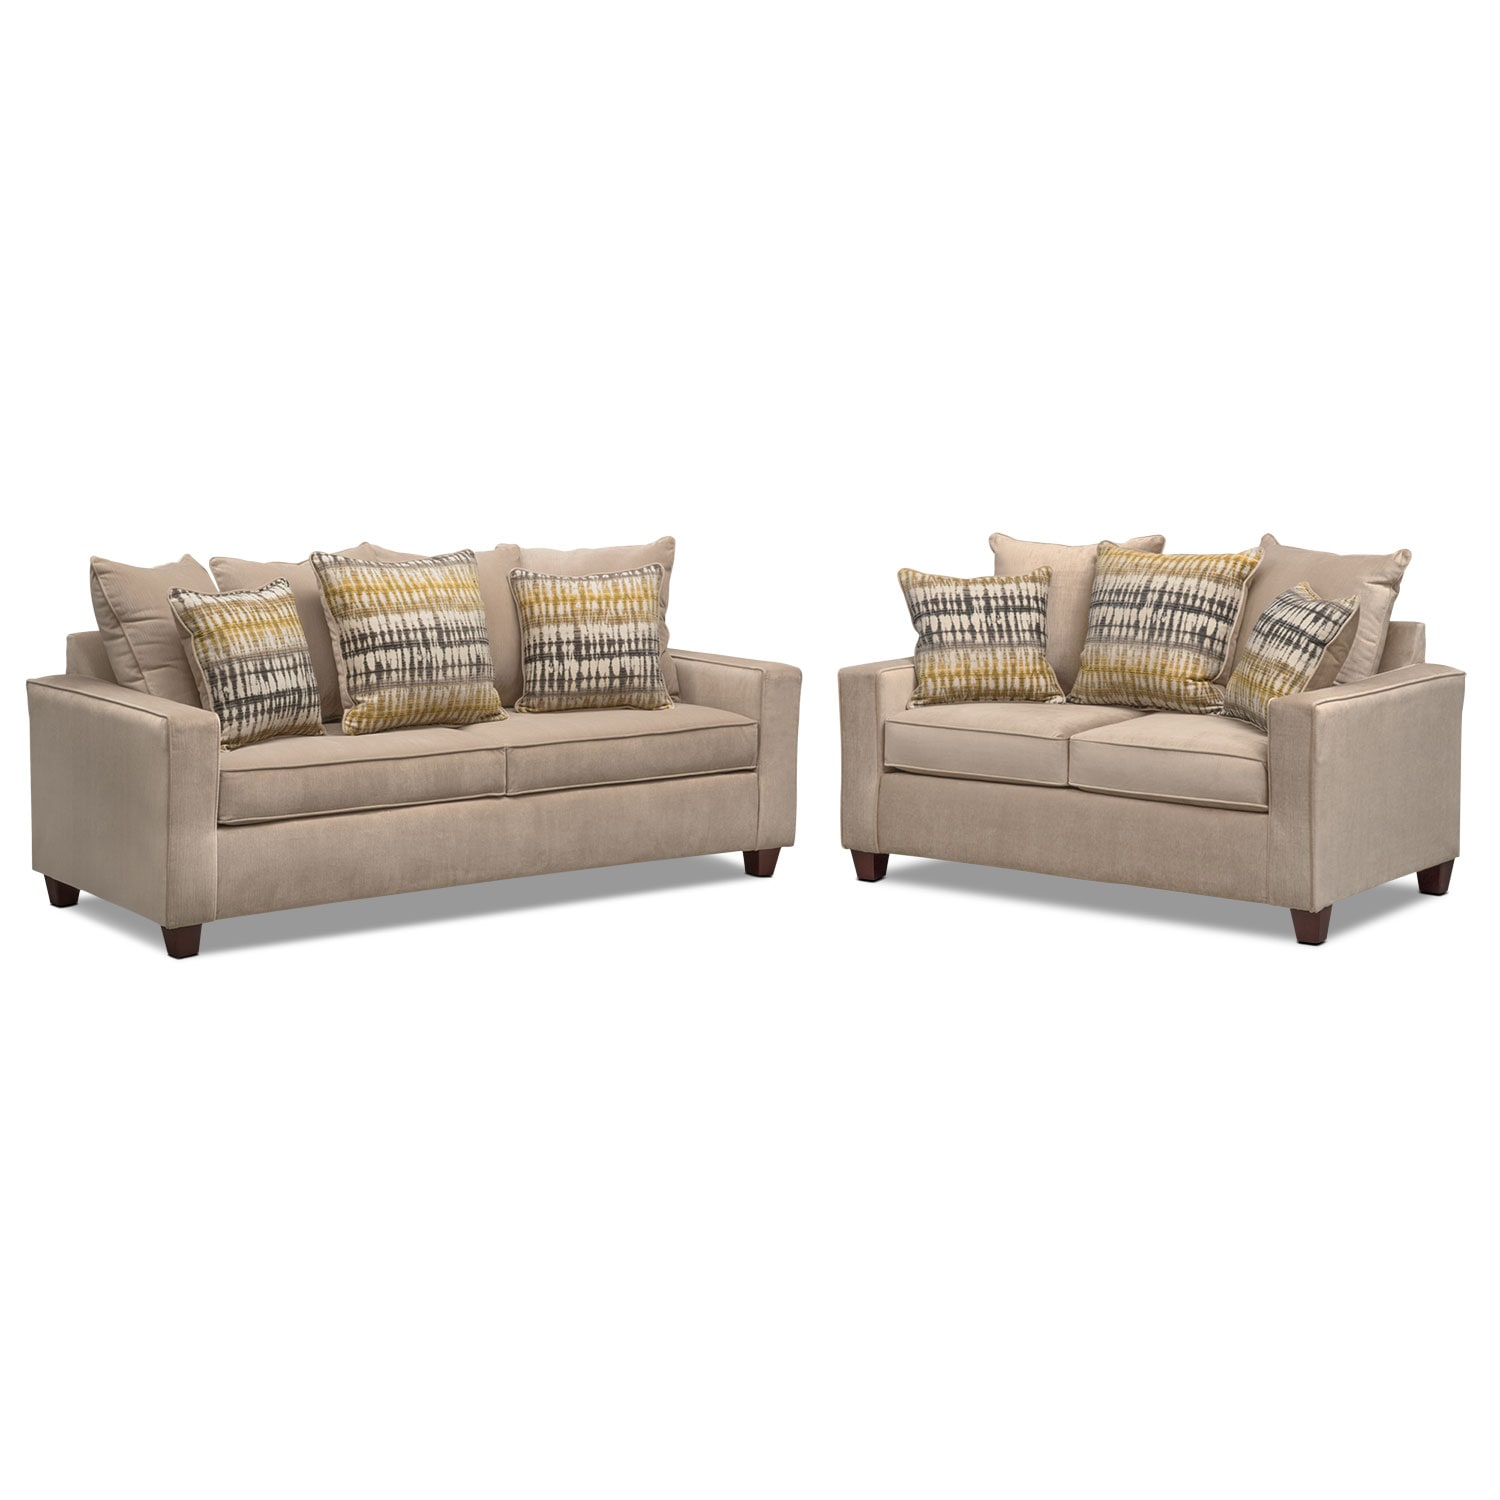 Living Room Furniture - Bryden Queen Innerspring Sleeper Sofa and Loveseat Set - Beige